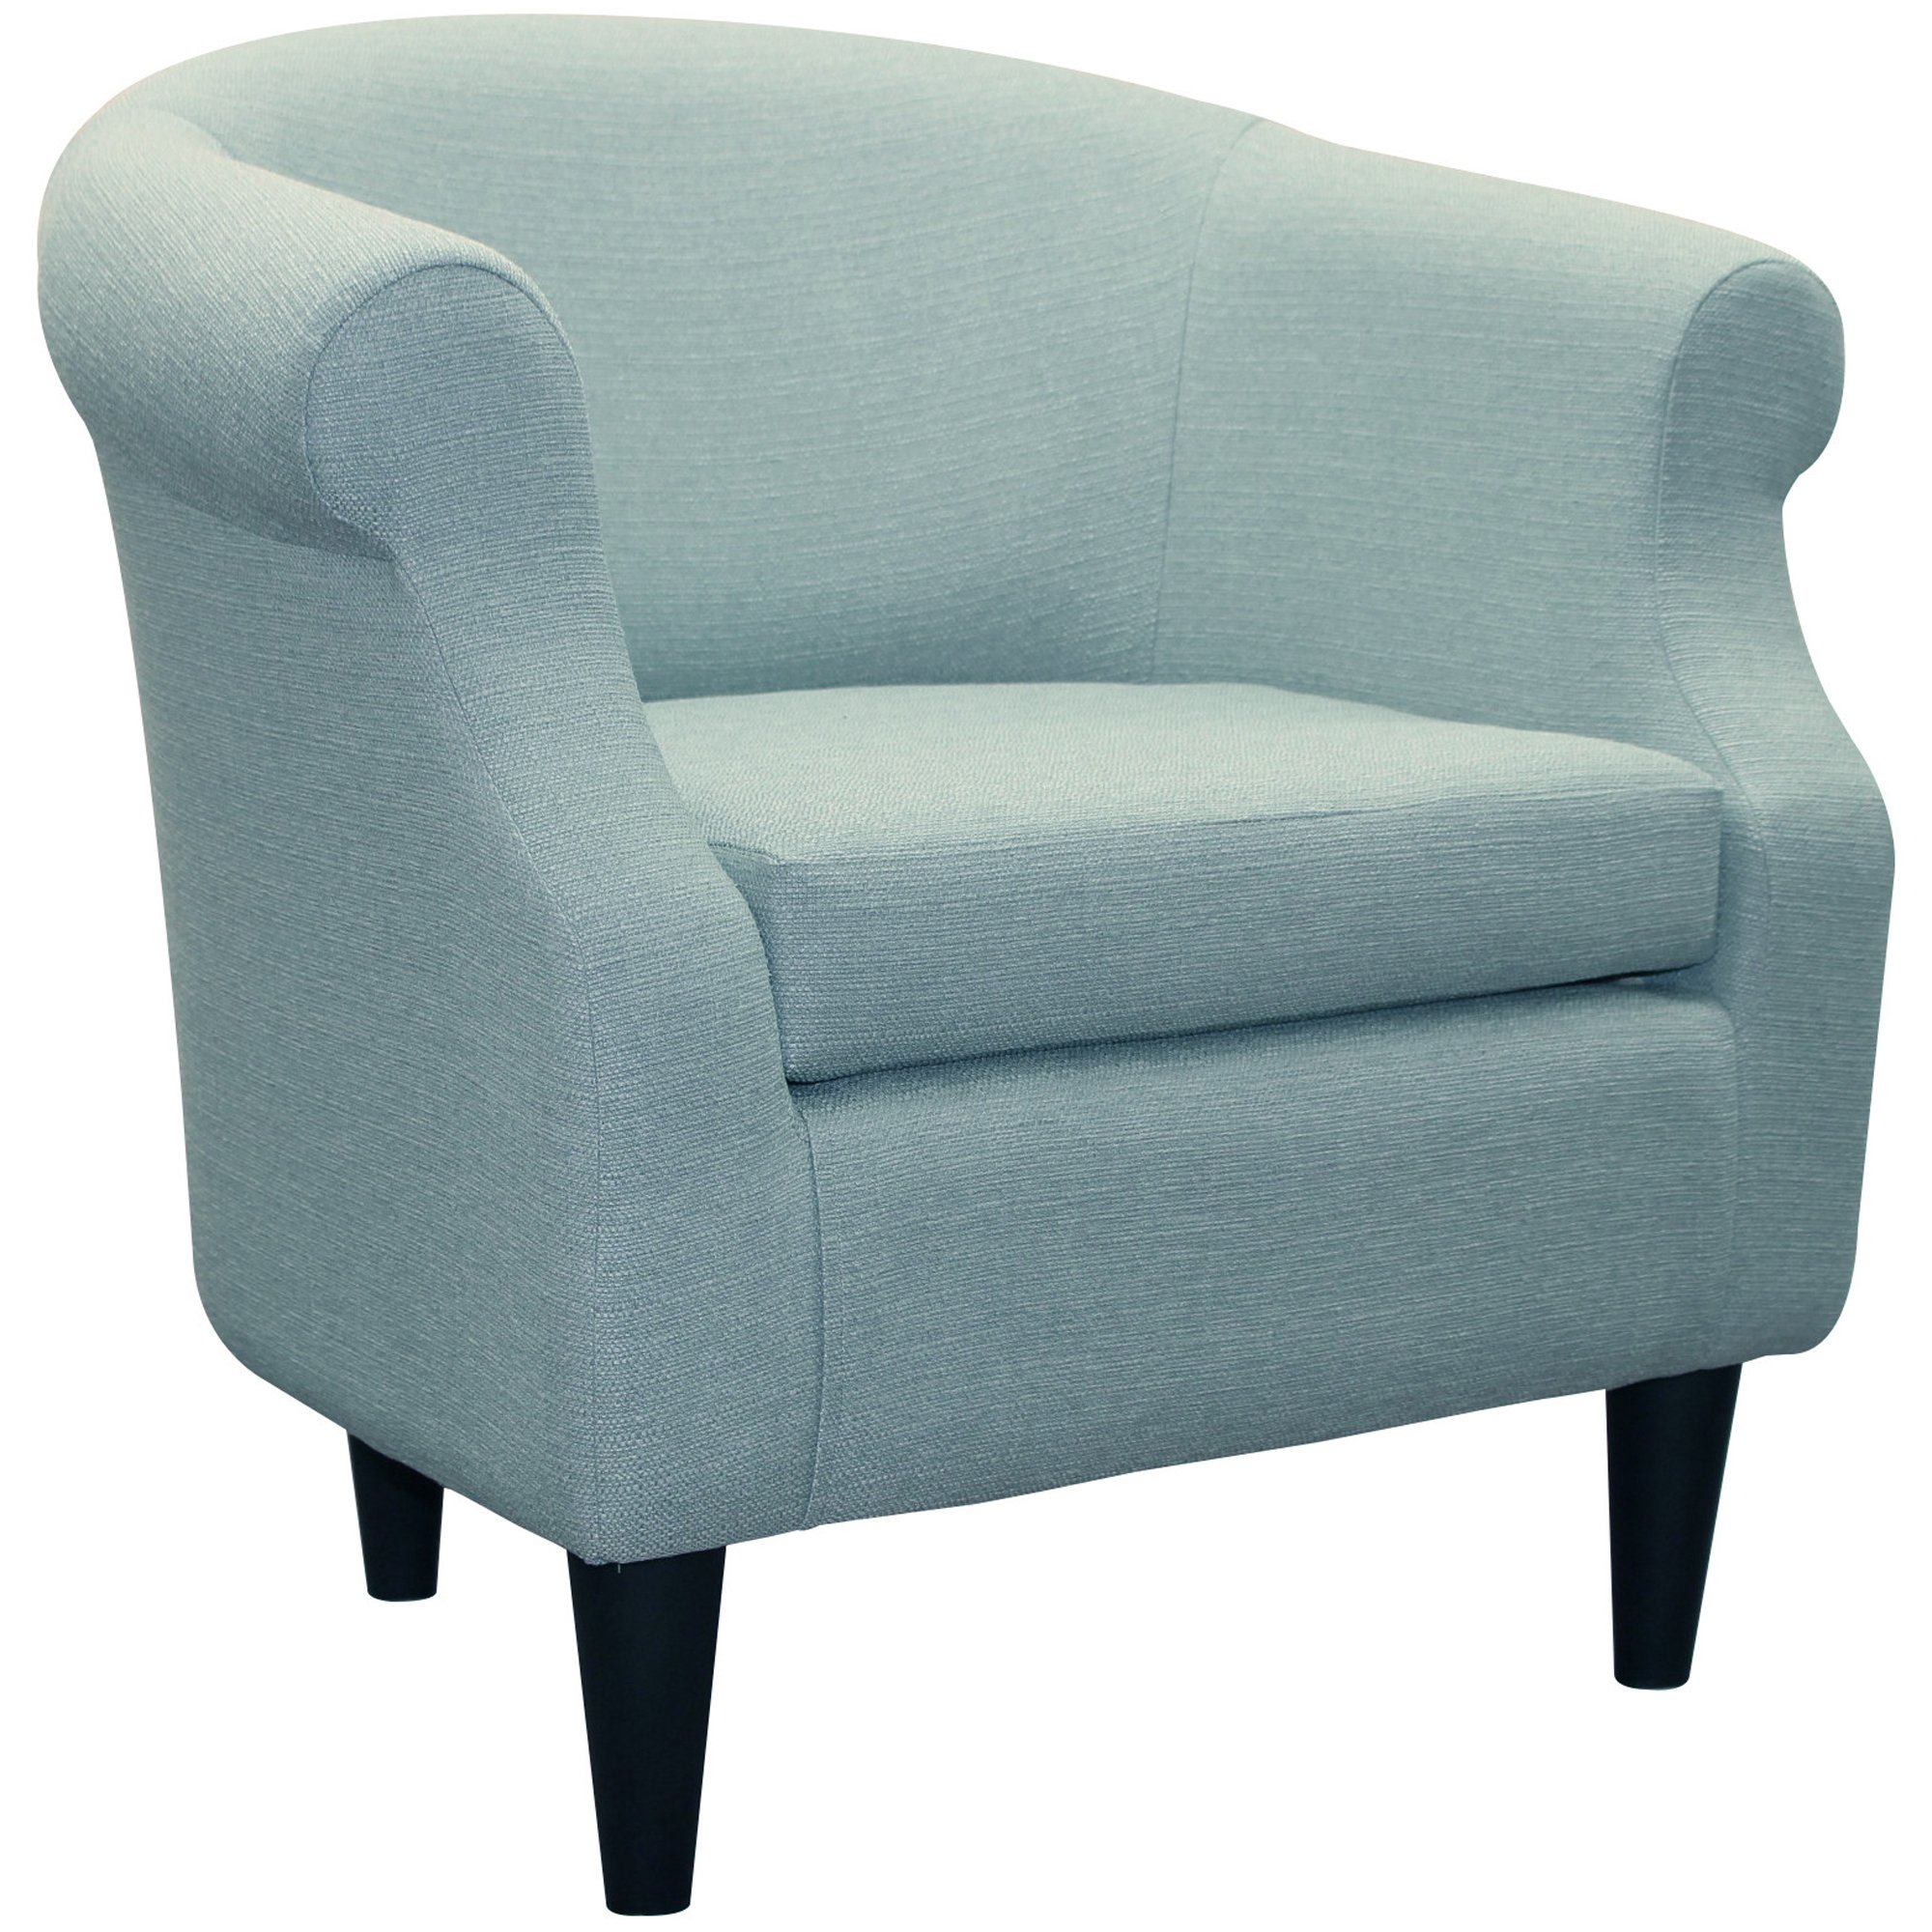 Upholstered Chair, Barrel Back Armchair, Contemporary Living Room Arm Guest Chair, Removable Seat Cushion, Microfiber Fabric (Depalma Spa)